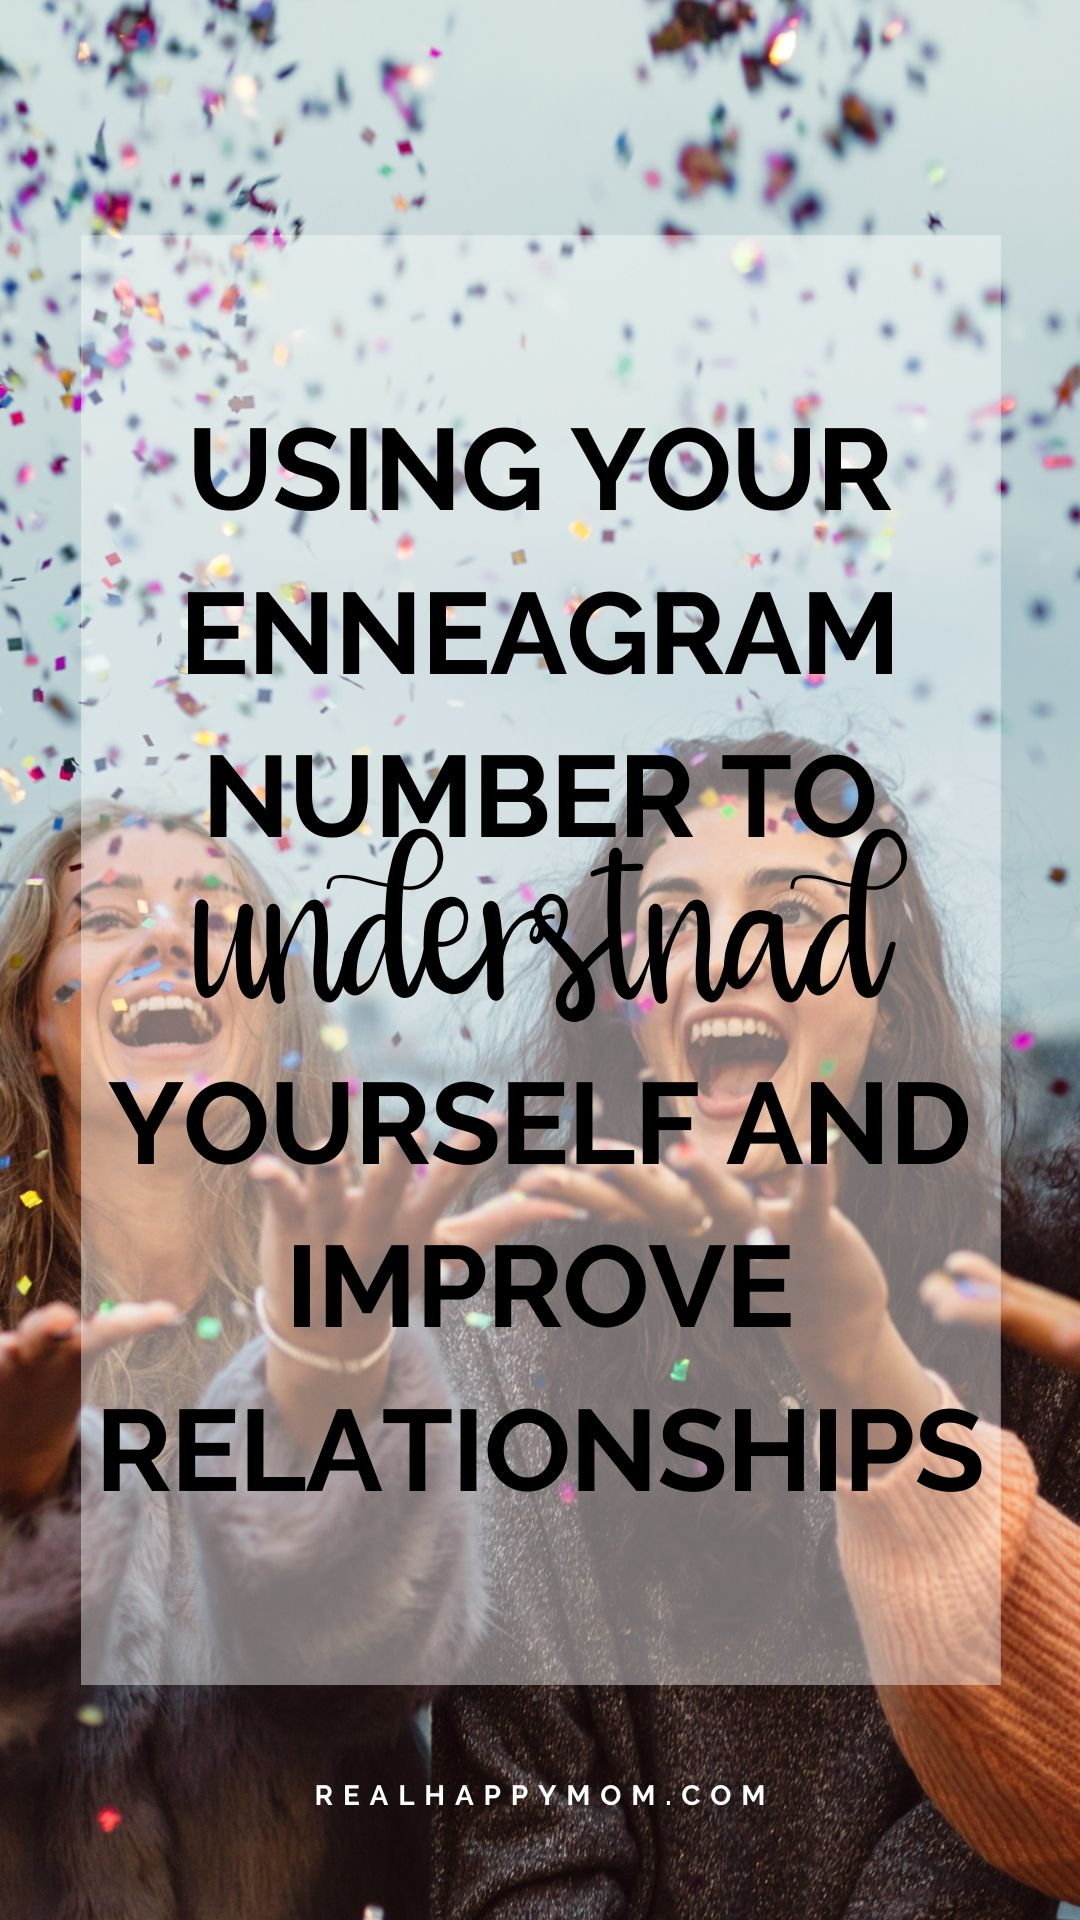 Using Your Enneagram Number to Understand Yourself and Improve Relationships